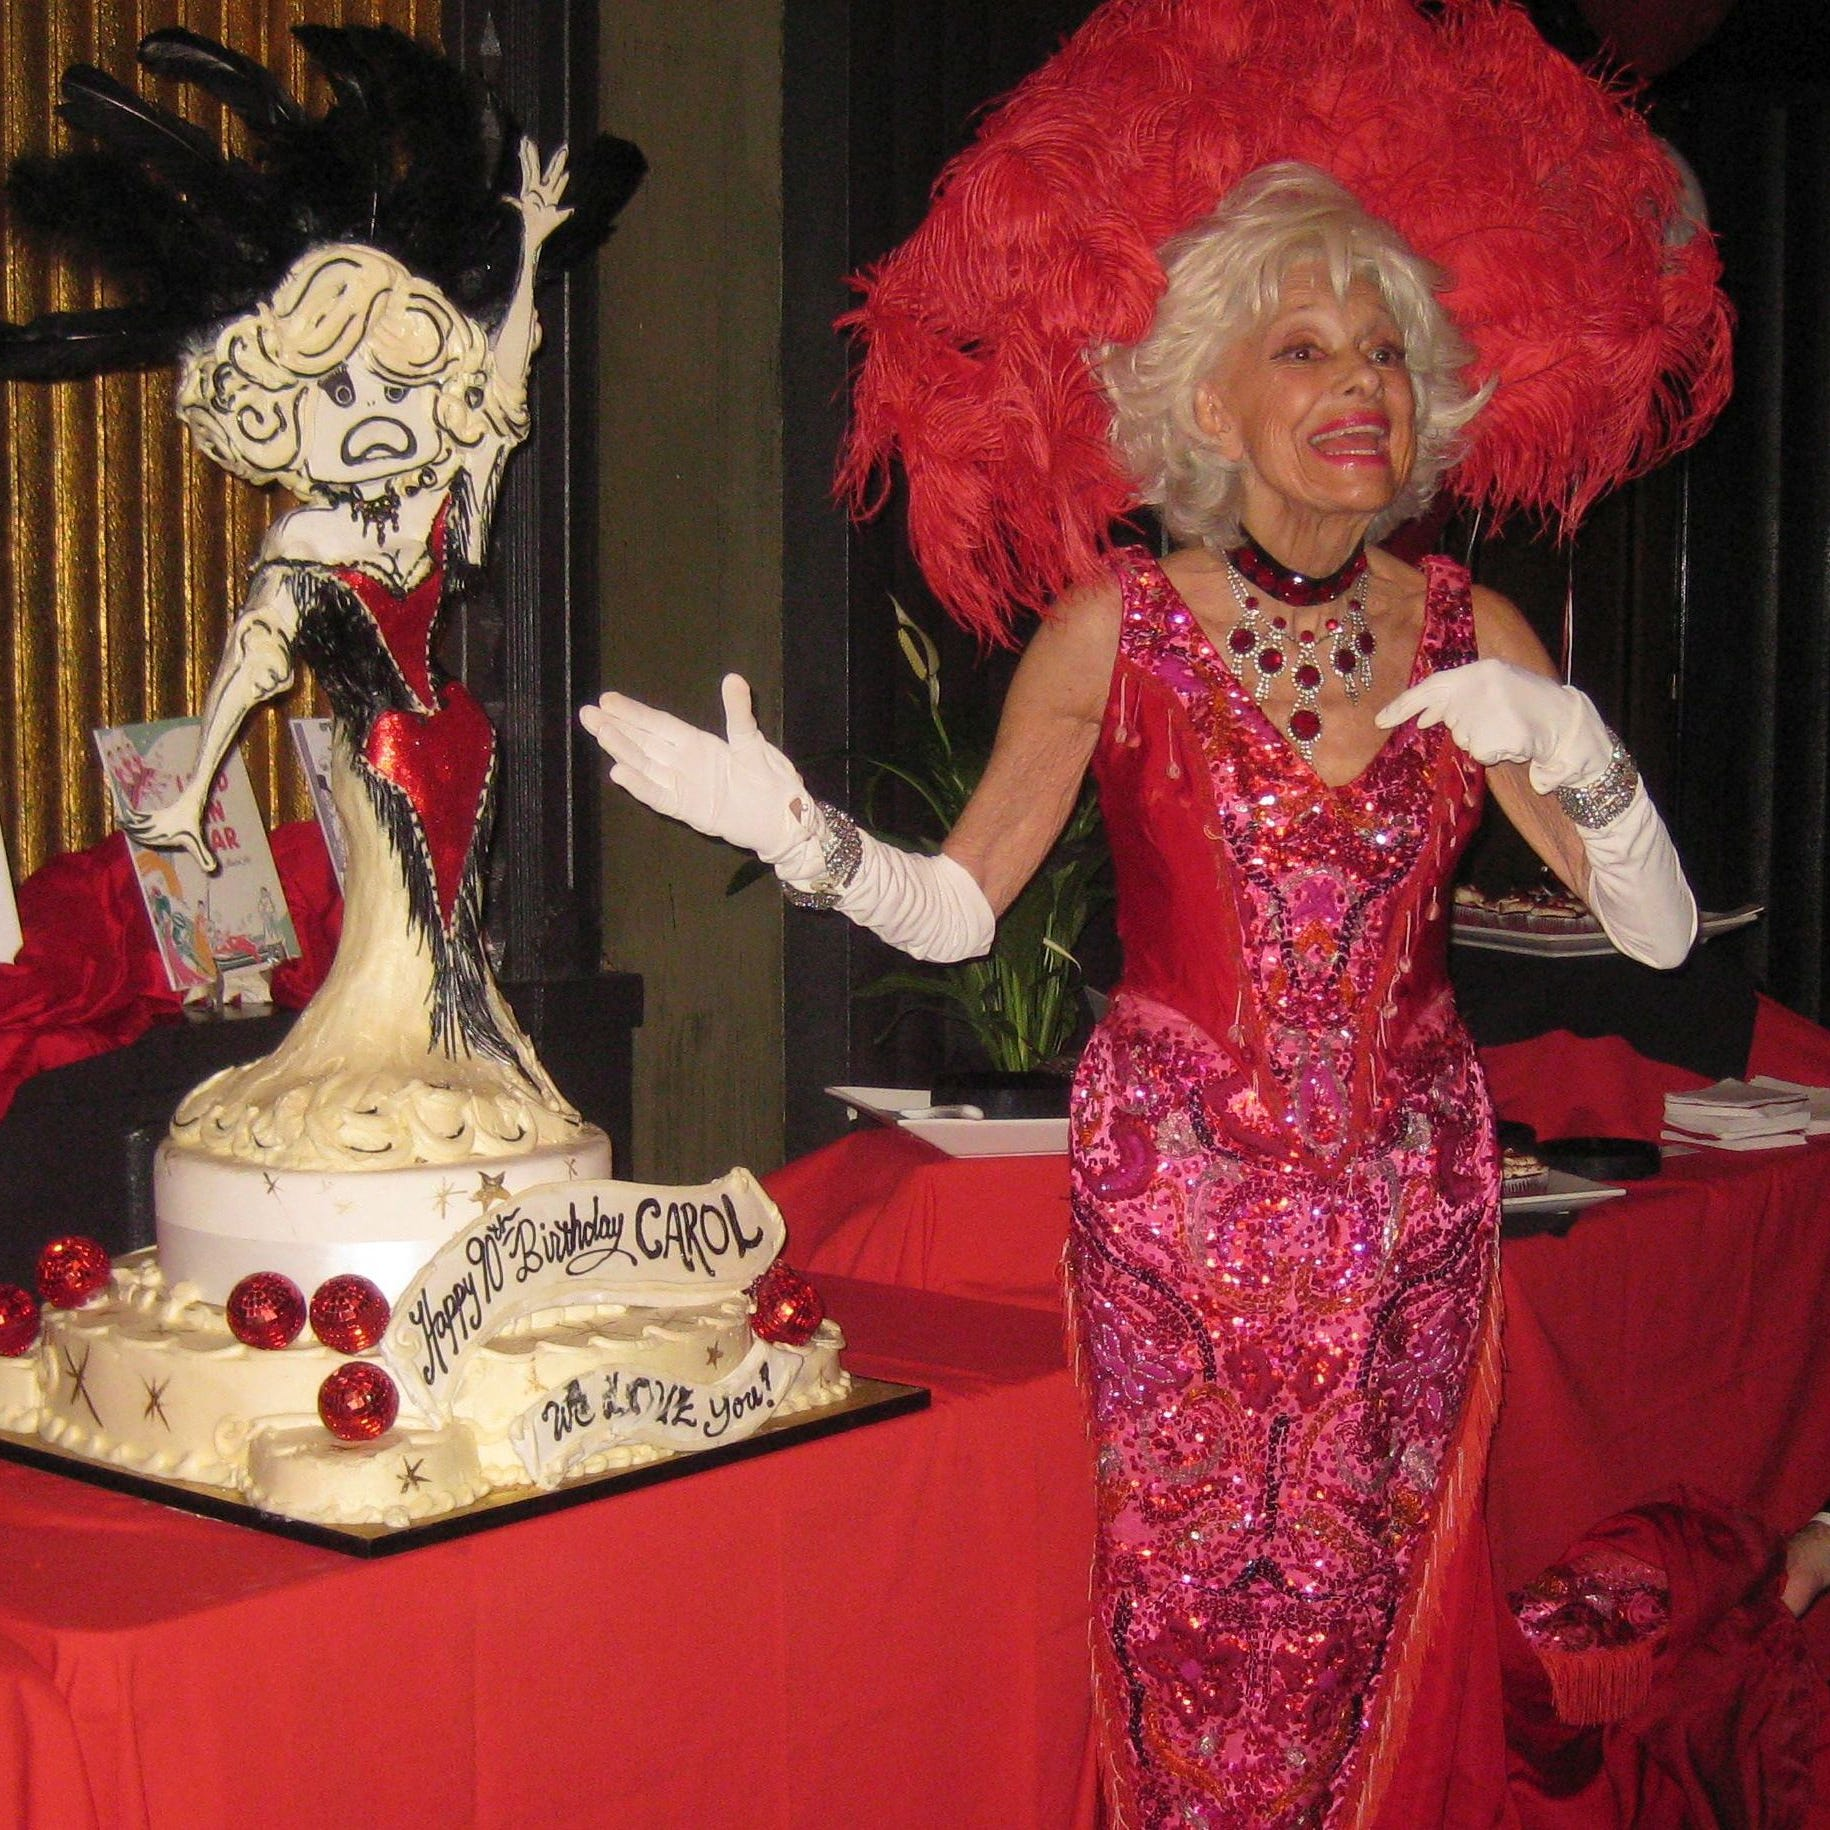 Applauding theater legend Carol Channing